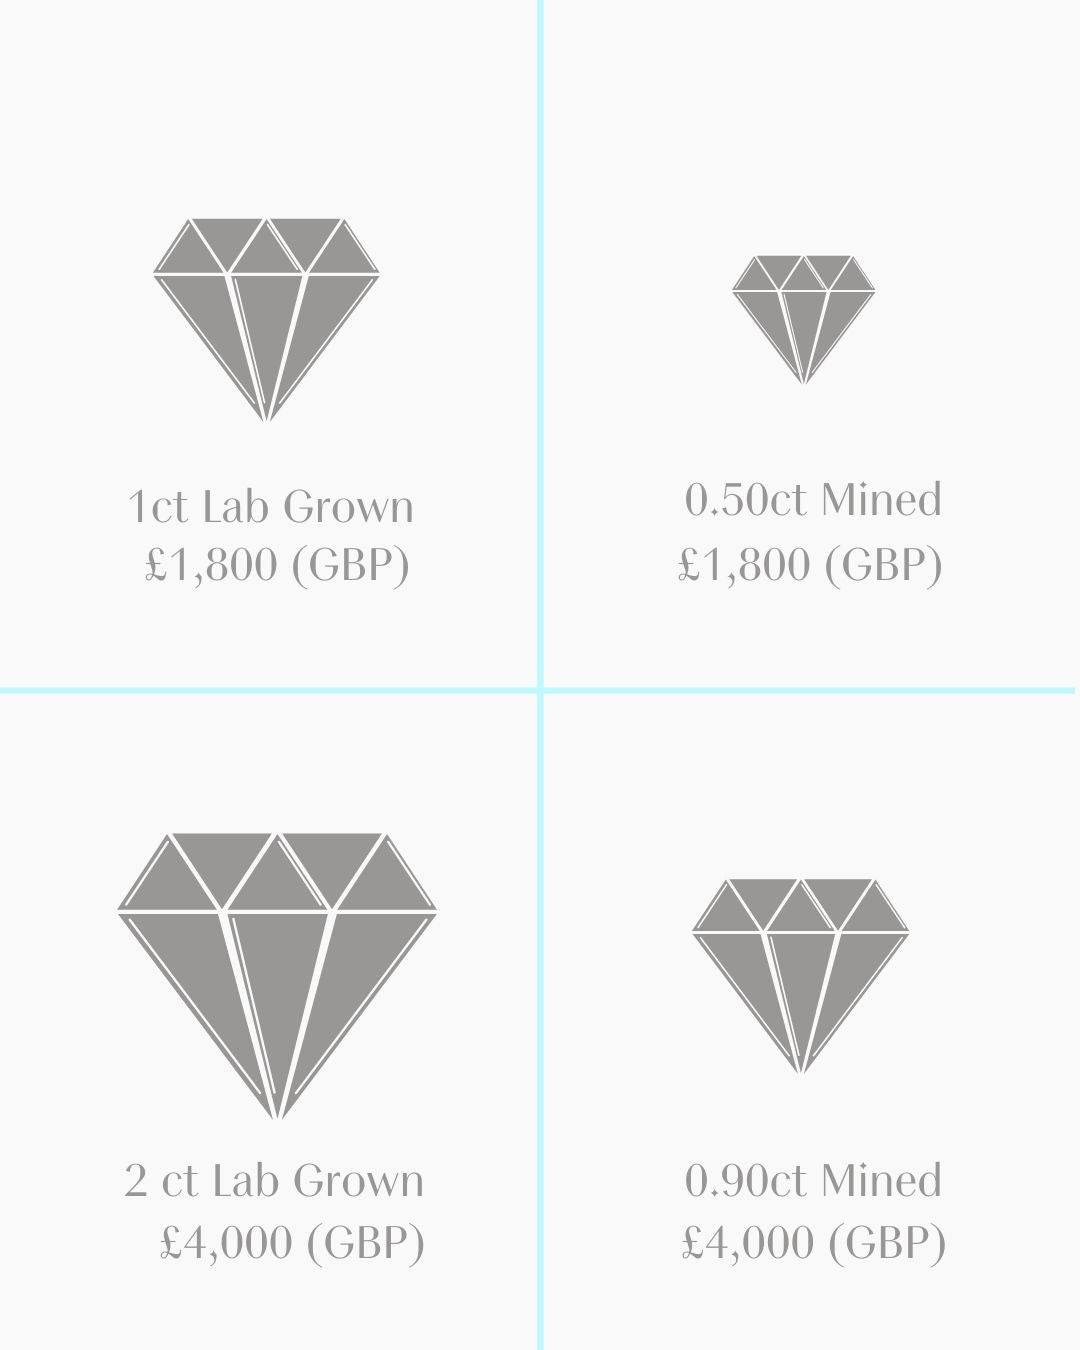 Diagram comparing the price of lab grown diamonds to mined diamonds - lab grown diamonds are less expensive ad the natural diamonds are more expensive.